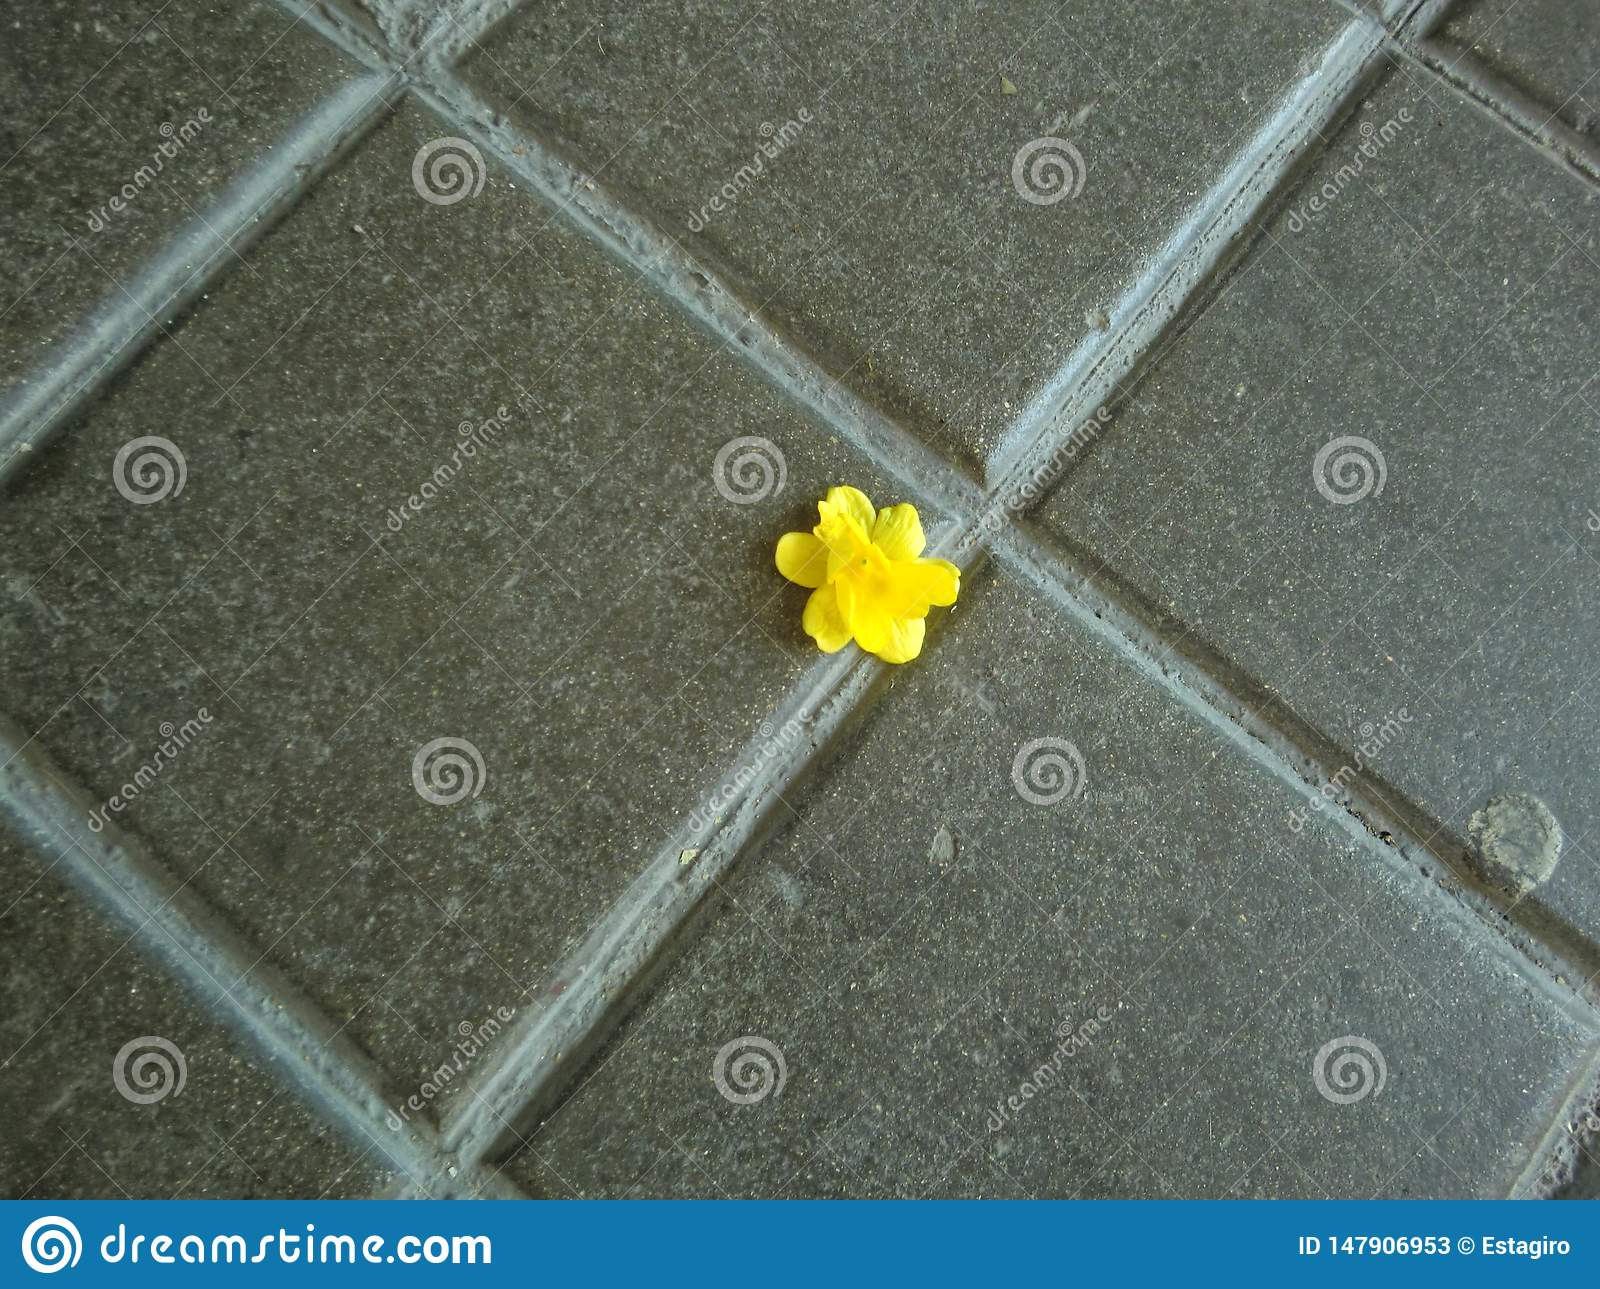 Small lone yellow flower on the pavement